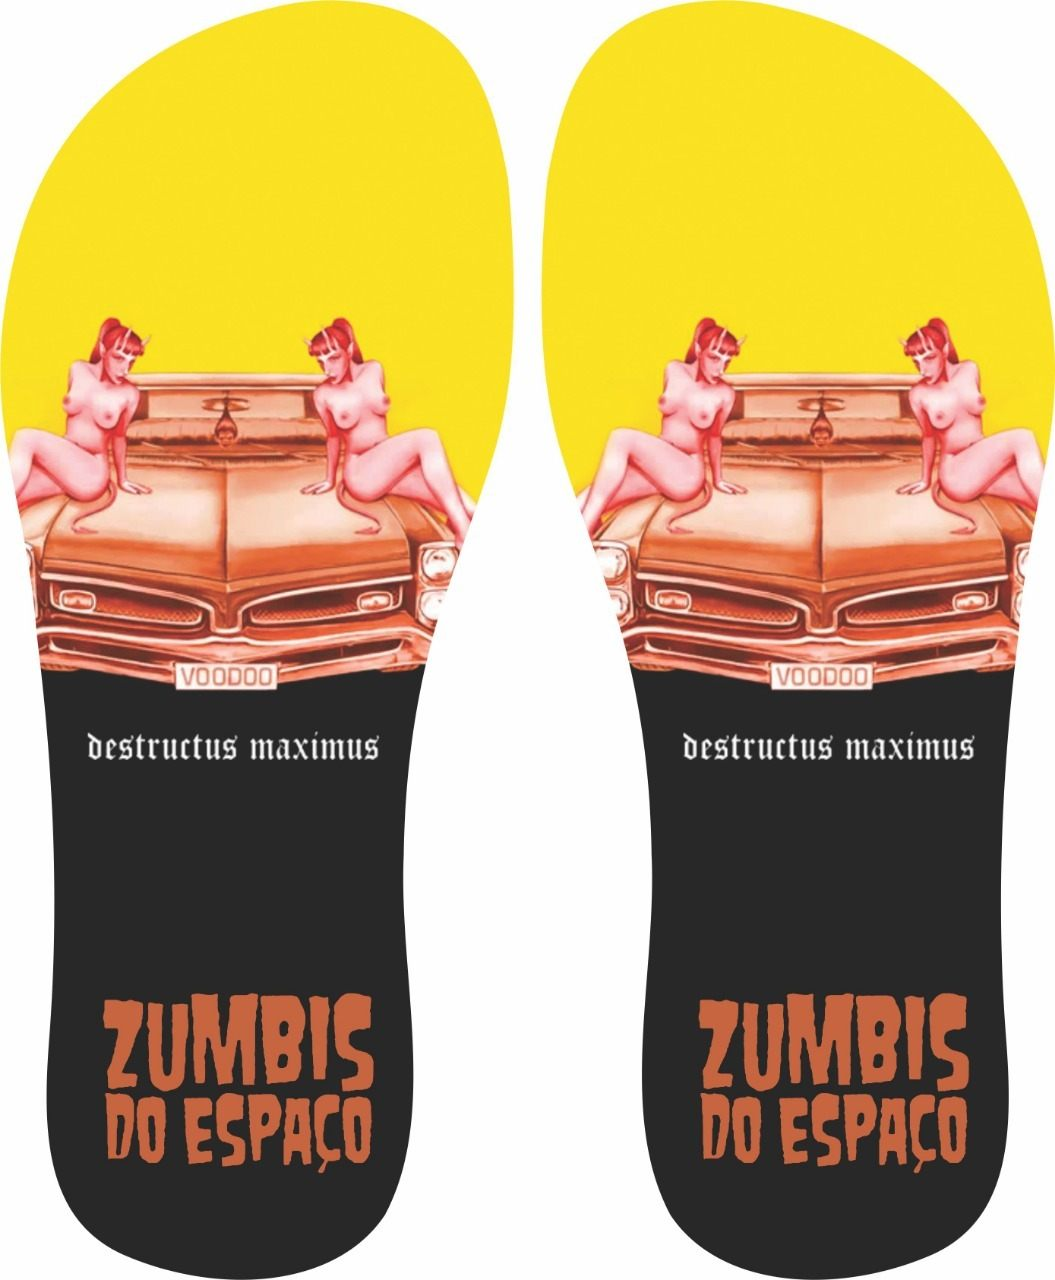 Chinelo Zumbi do Espaço Destructus Maximus - Asterion Chinelos Personalizados